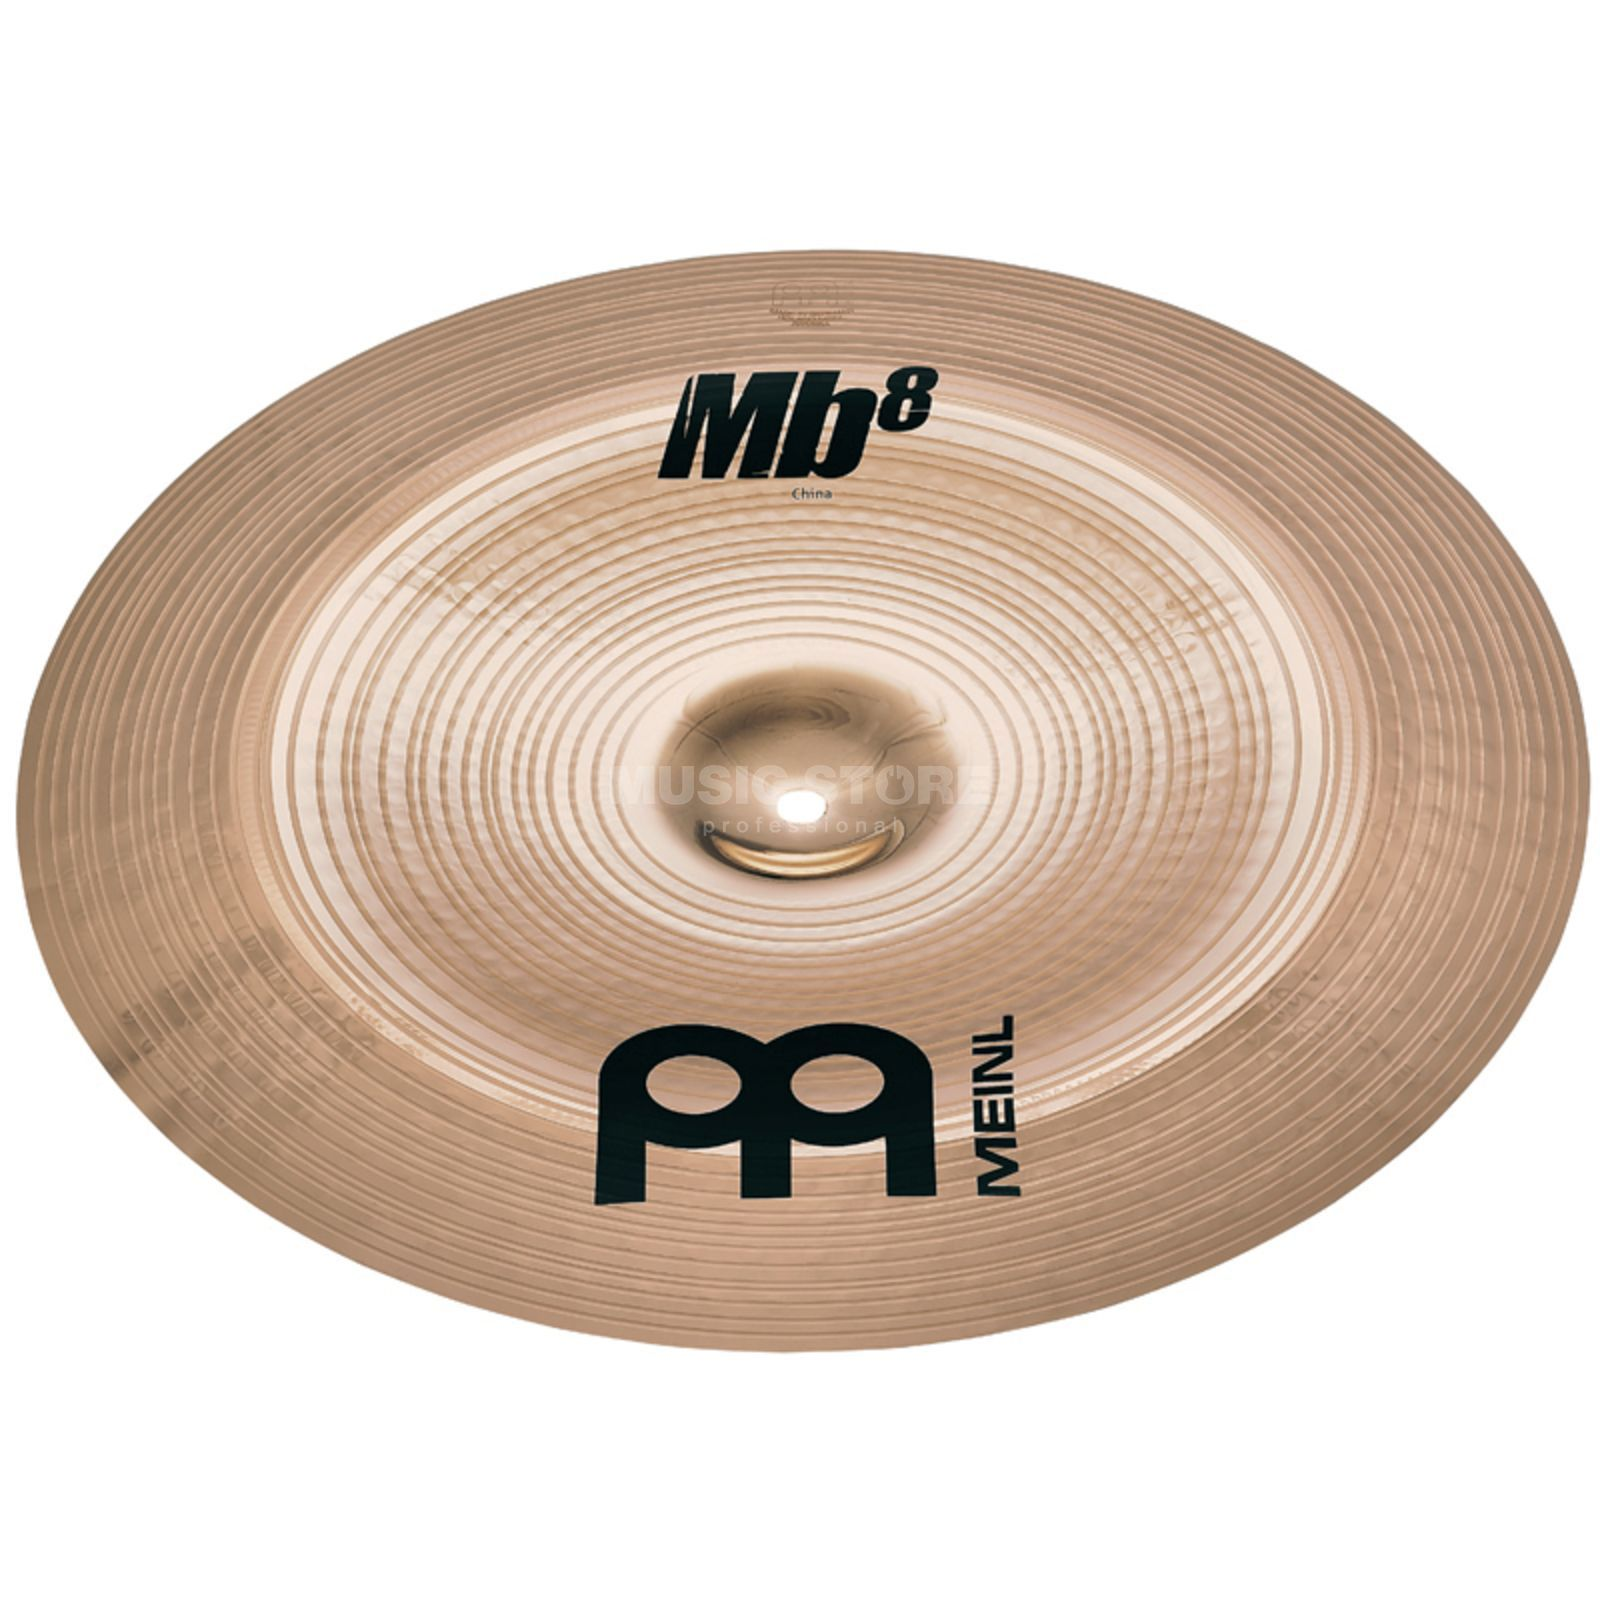 "Meinl MB8 China 16"" MB8-16CH-B, Brilliant Finish Produktbild"